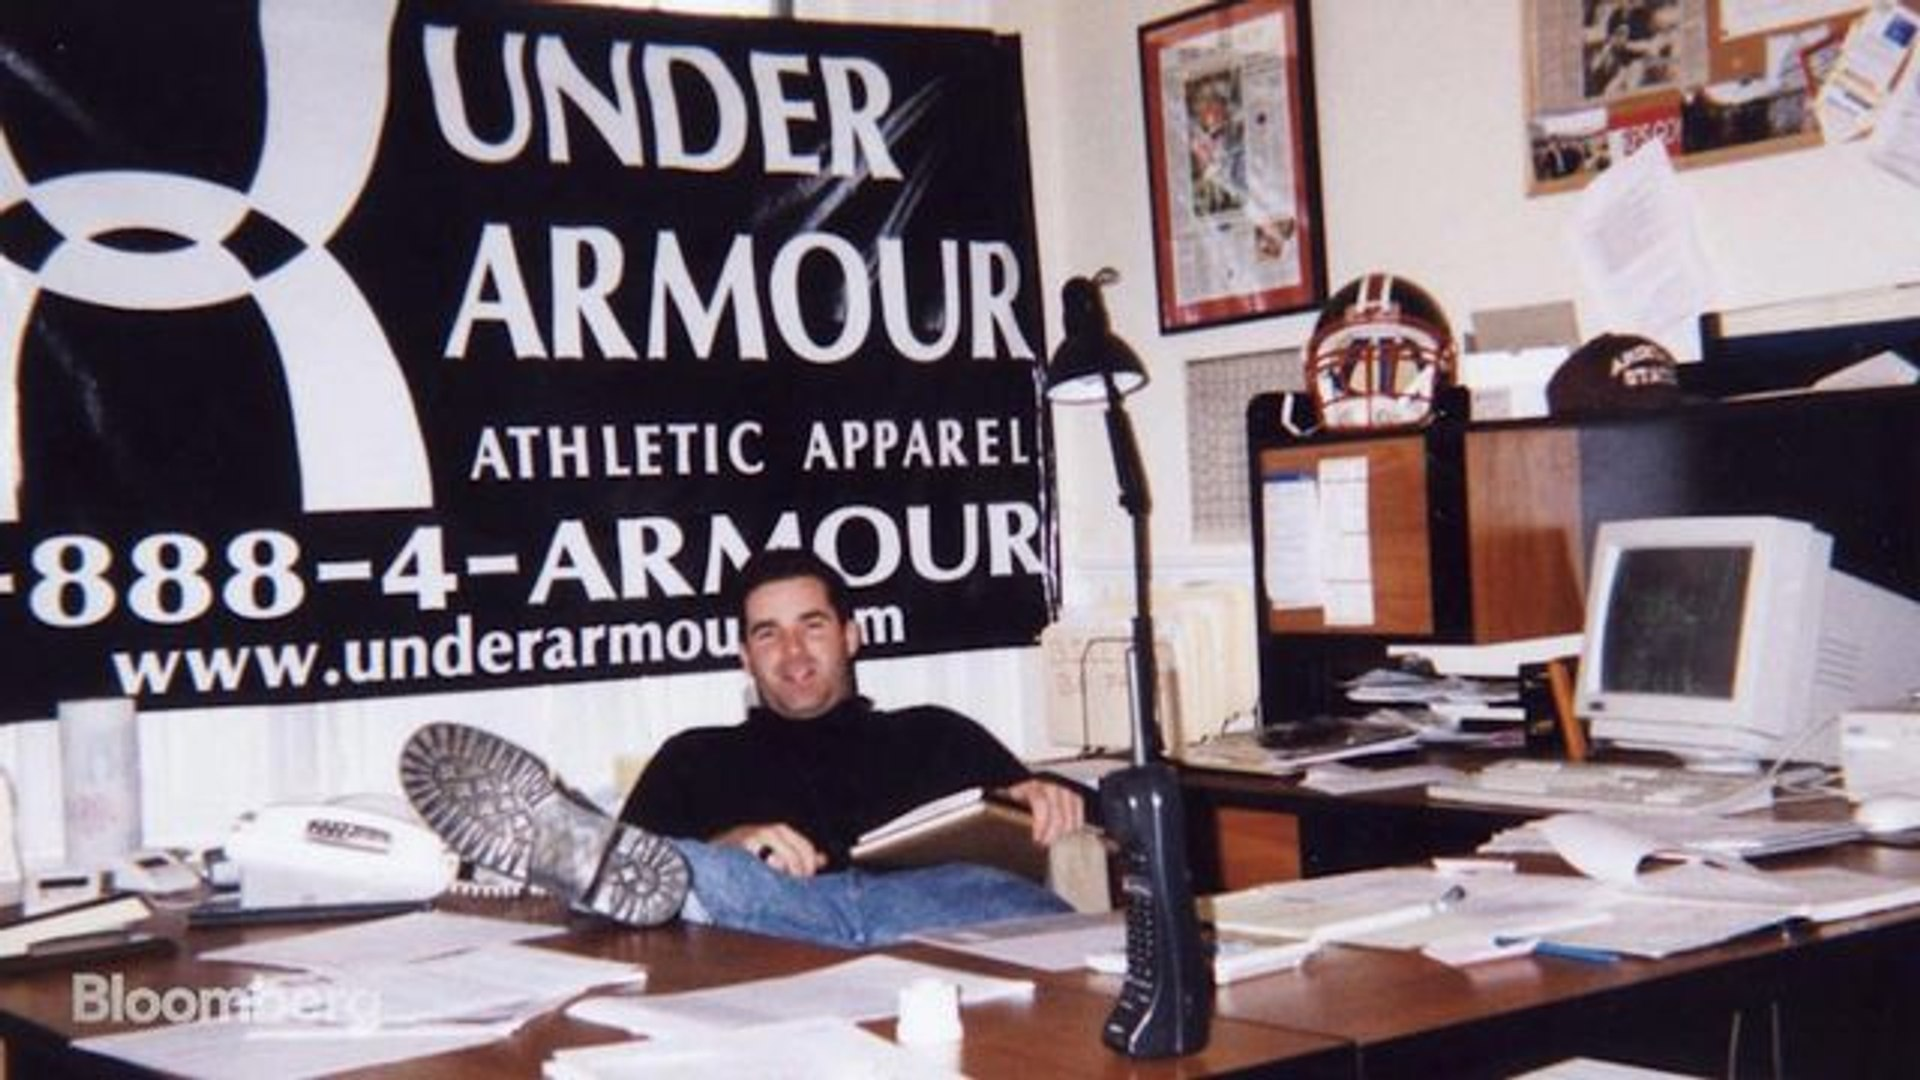 Under Armour CEO Plank Says Women's Lingerie Helped Start the Company